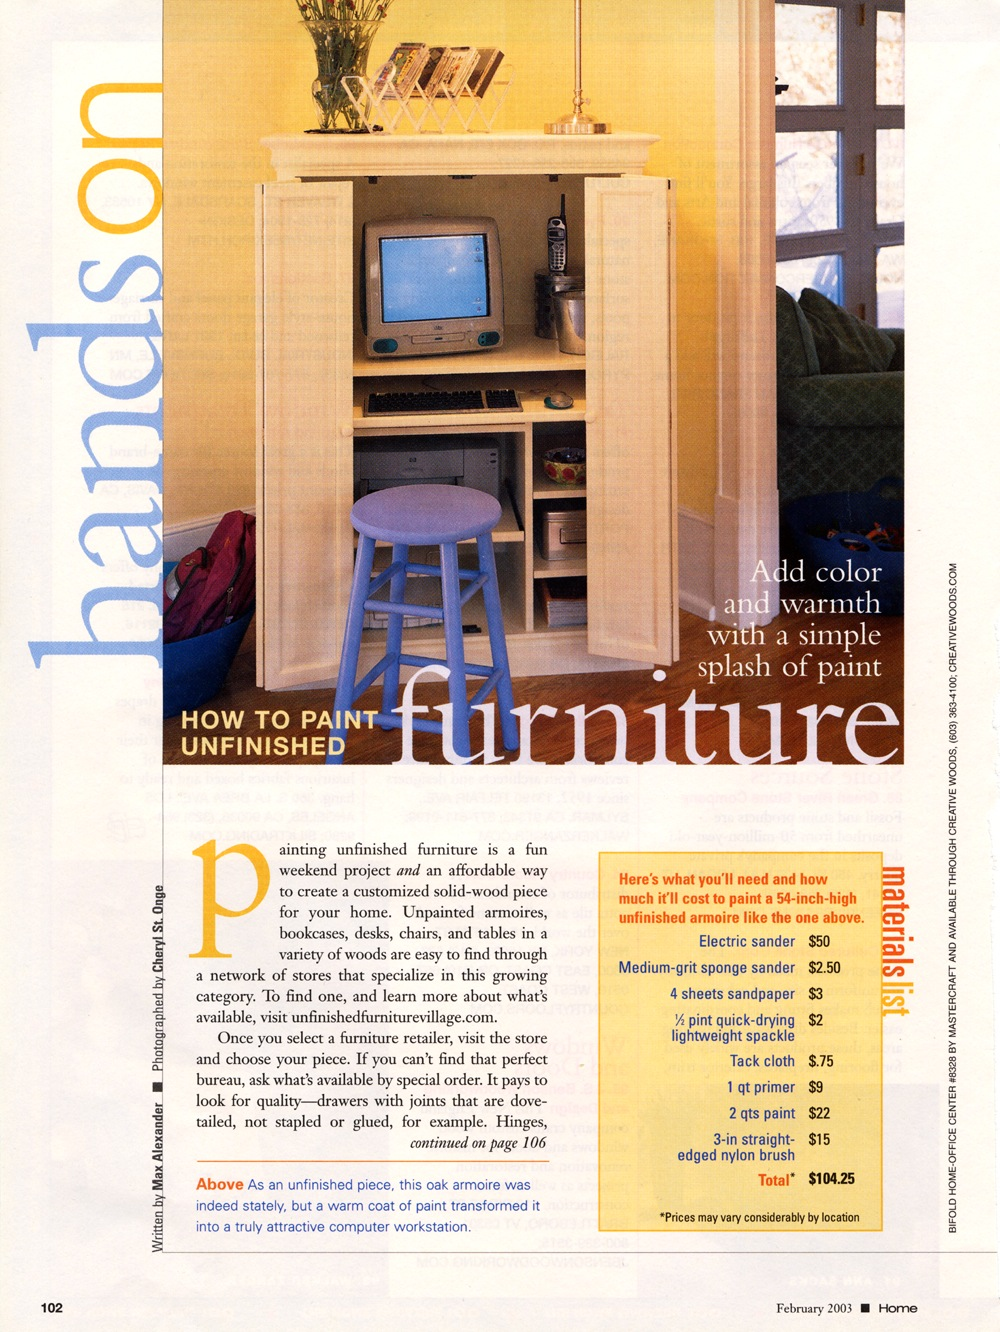 Home Magazine - Painting Primer - Page 1.jpg